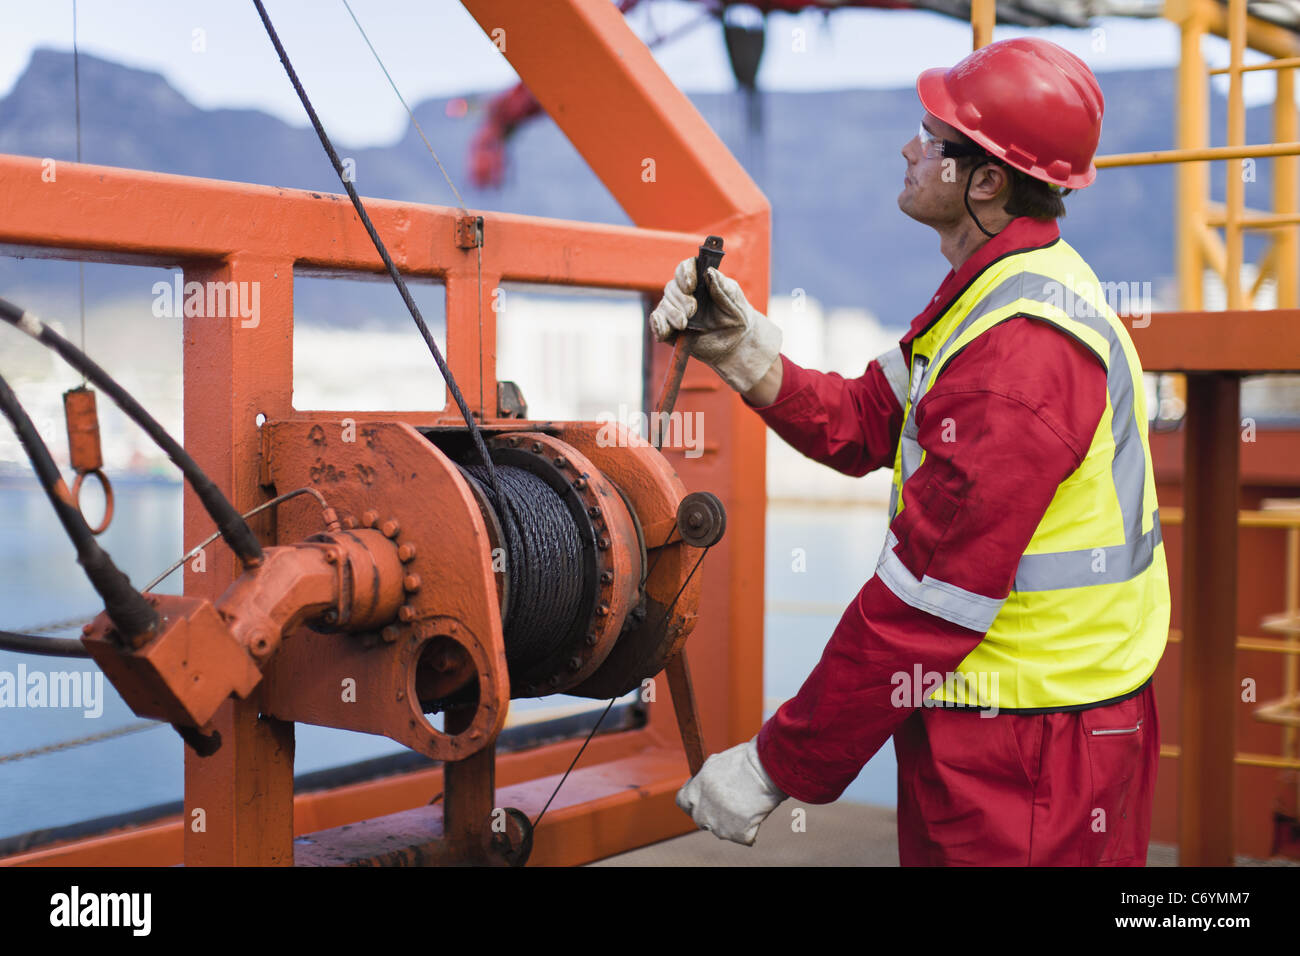 Worker spooling cord on oil rig - Stock Image